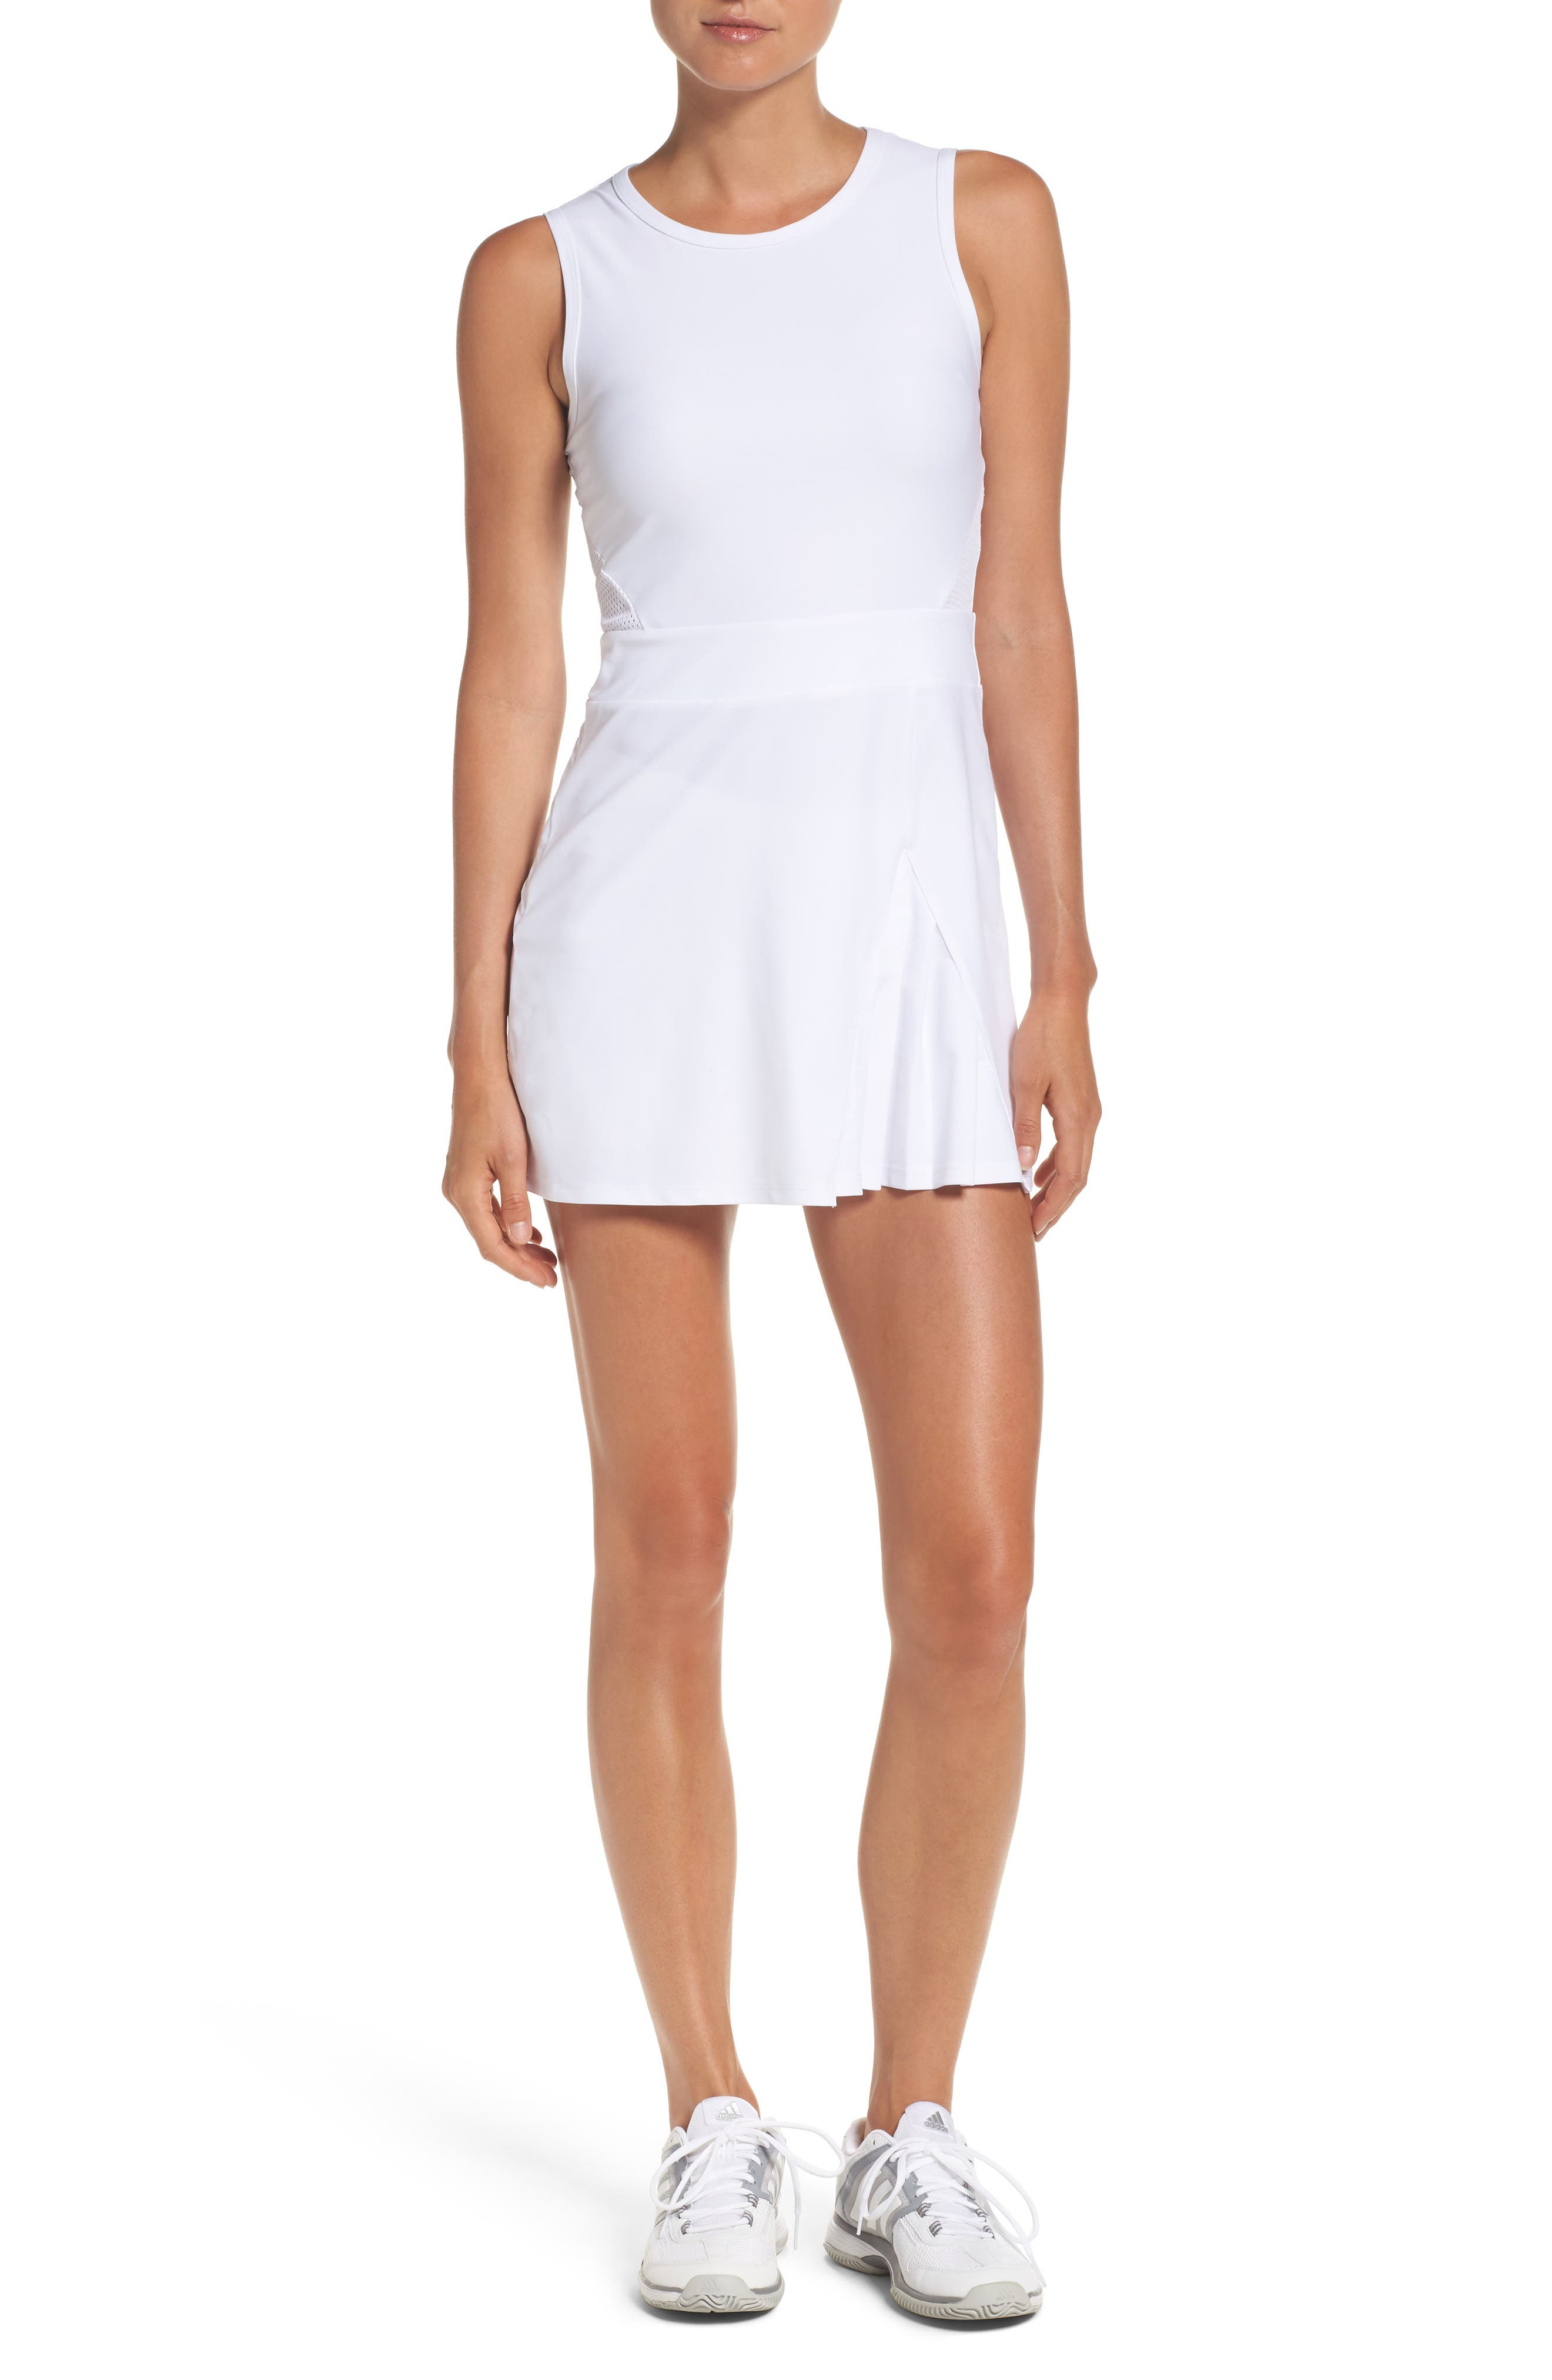 BoomBoom Athletica Tennis Dress & Shorts